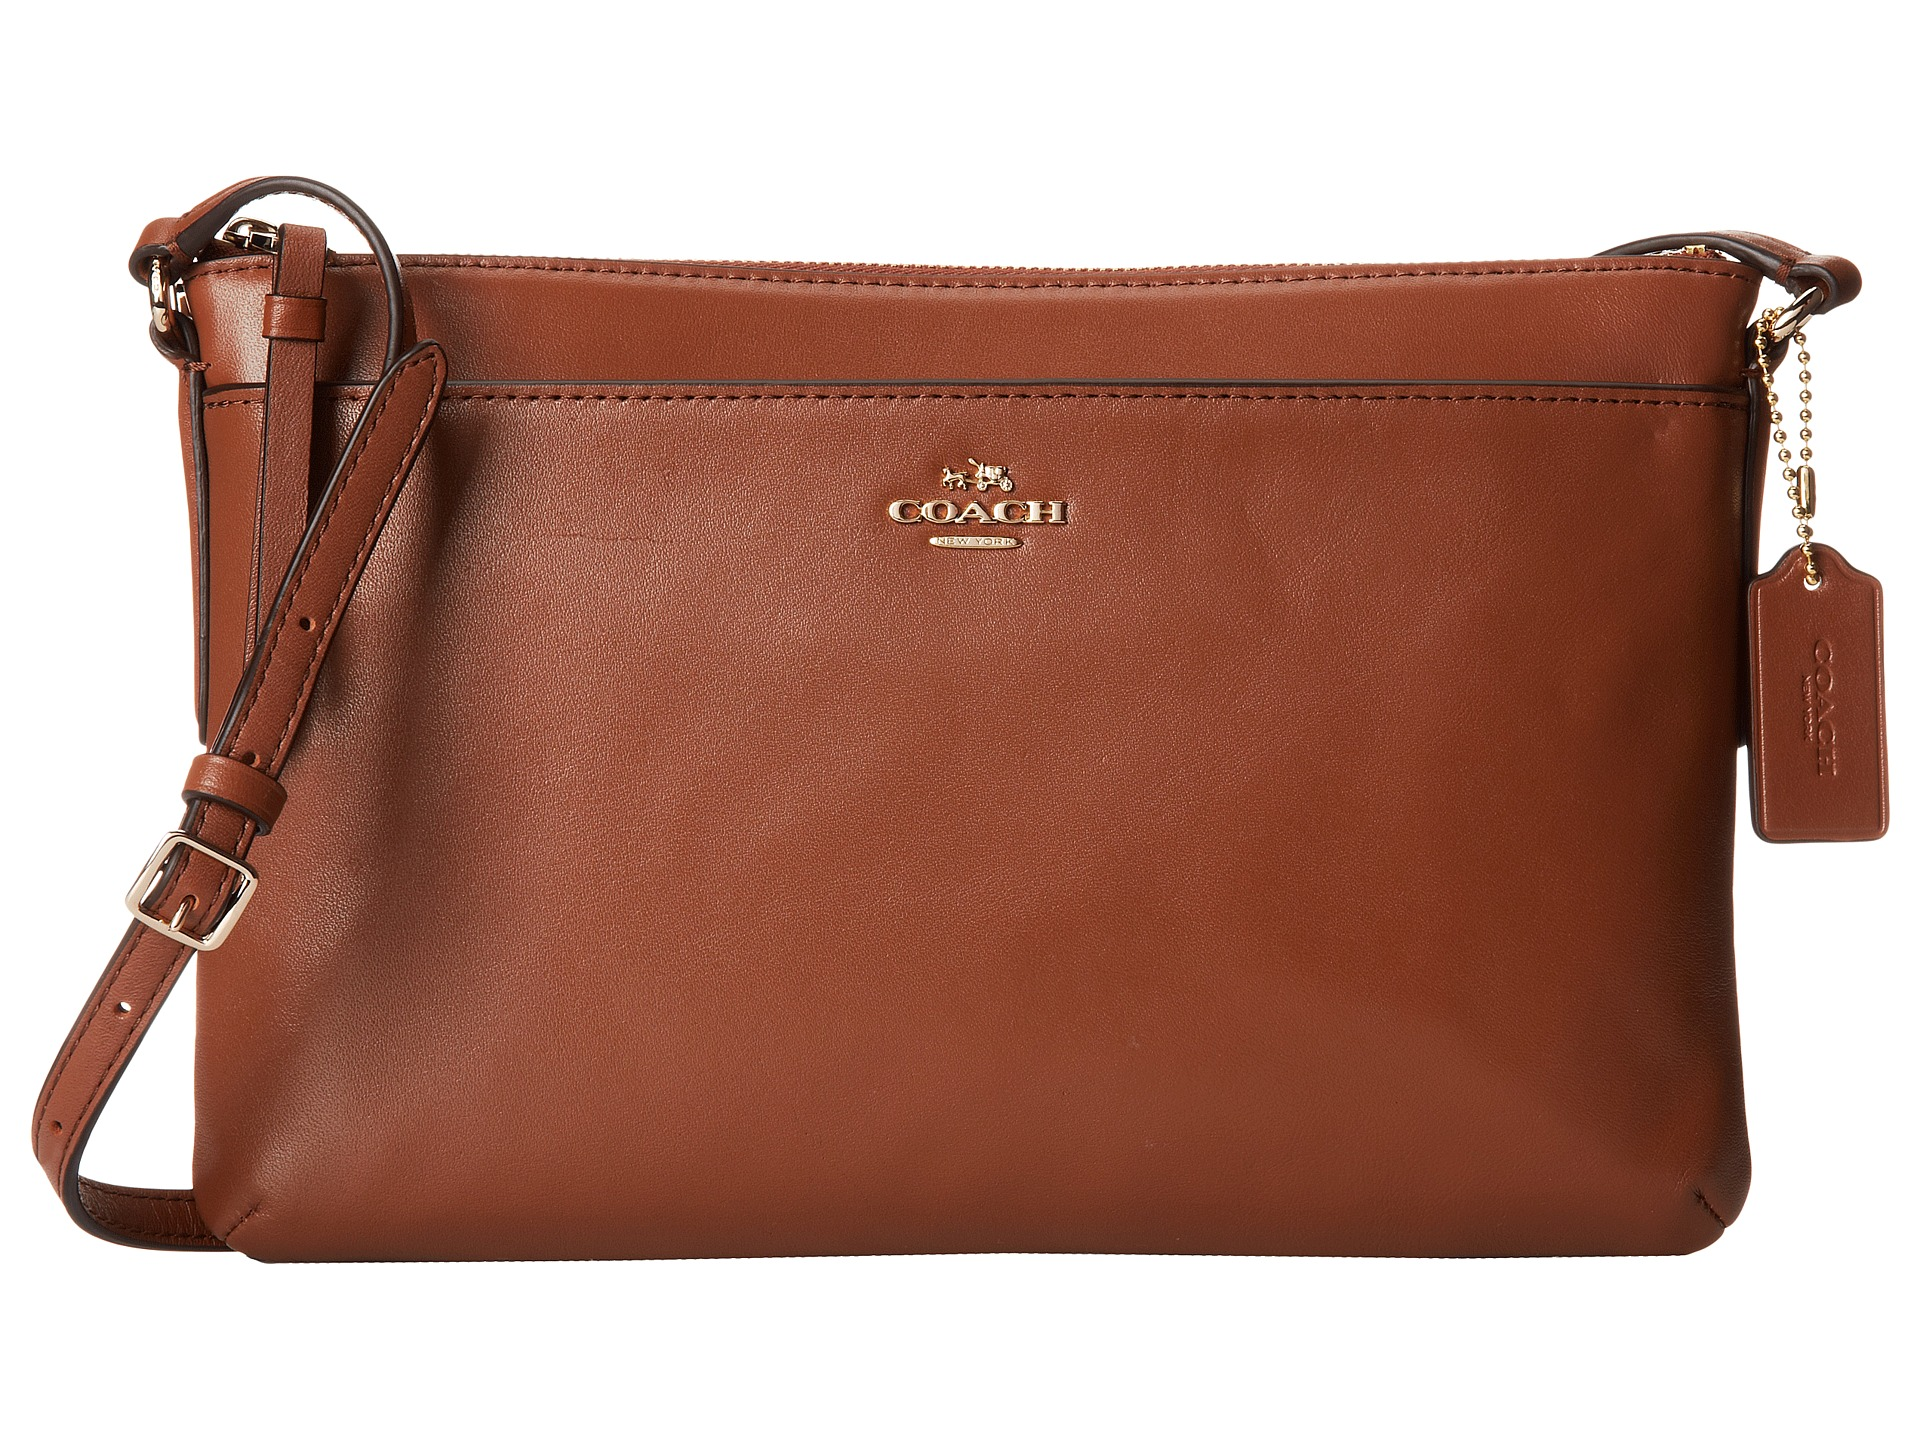 Zappos Leather Crossbody Bag 36